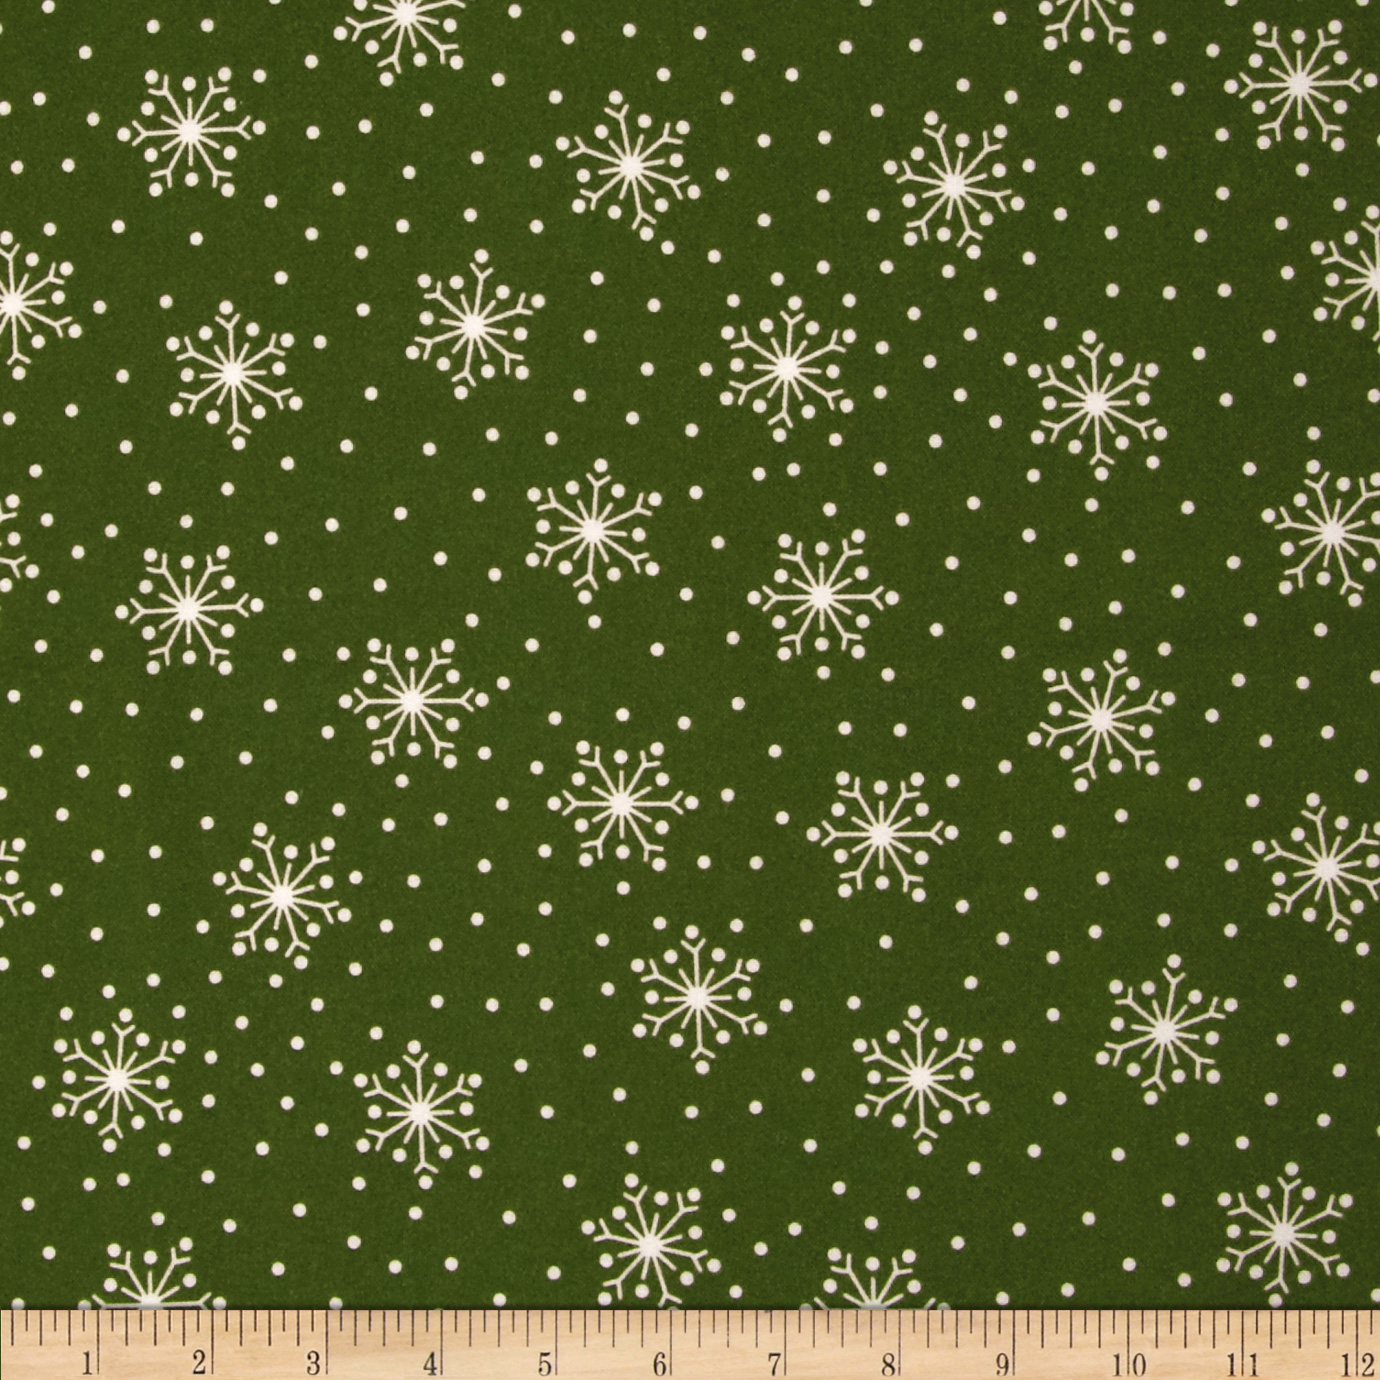 Crazy for Christmas Flannel Tossed Snowflake Green Fabric by E. E. Schenck in USA